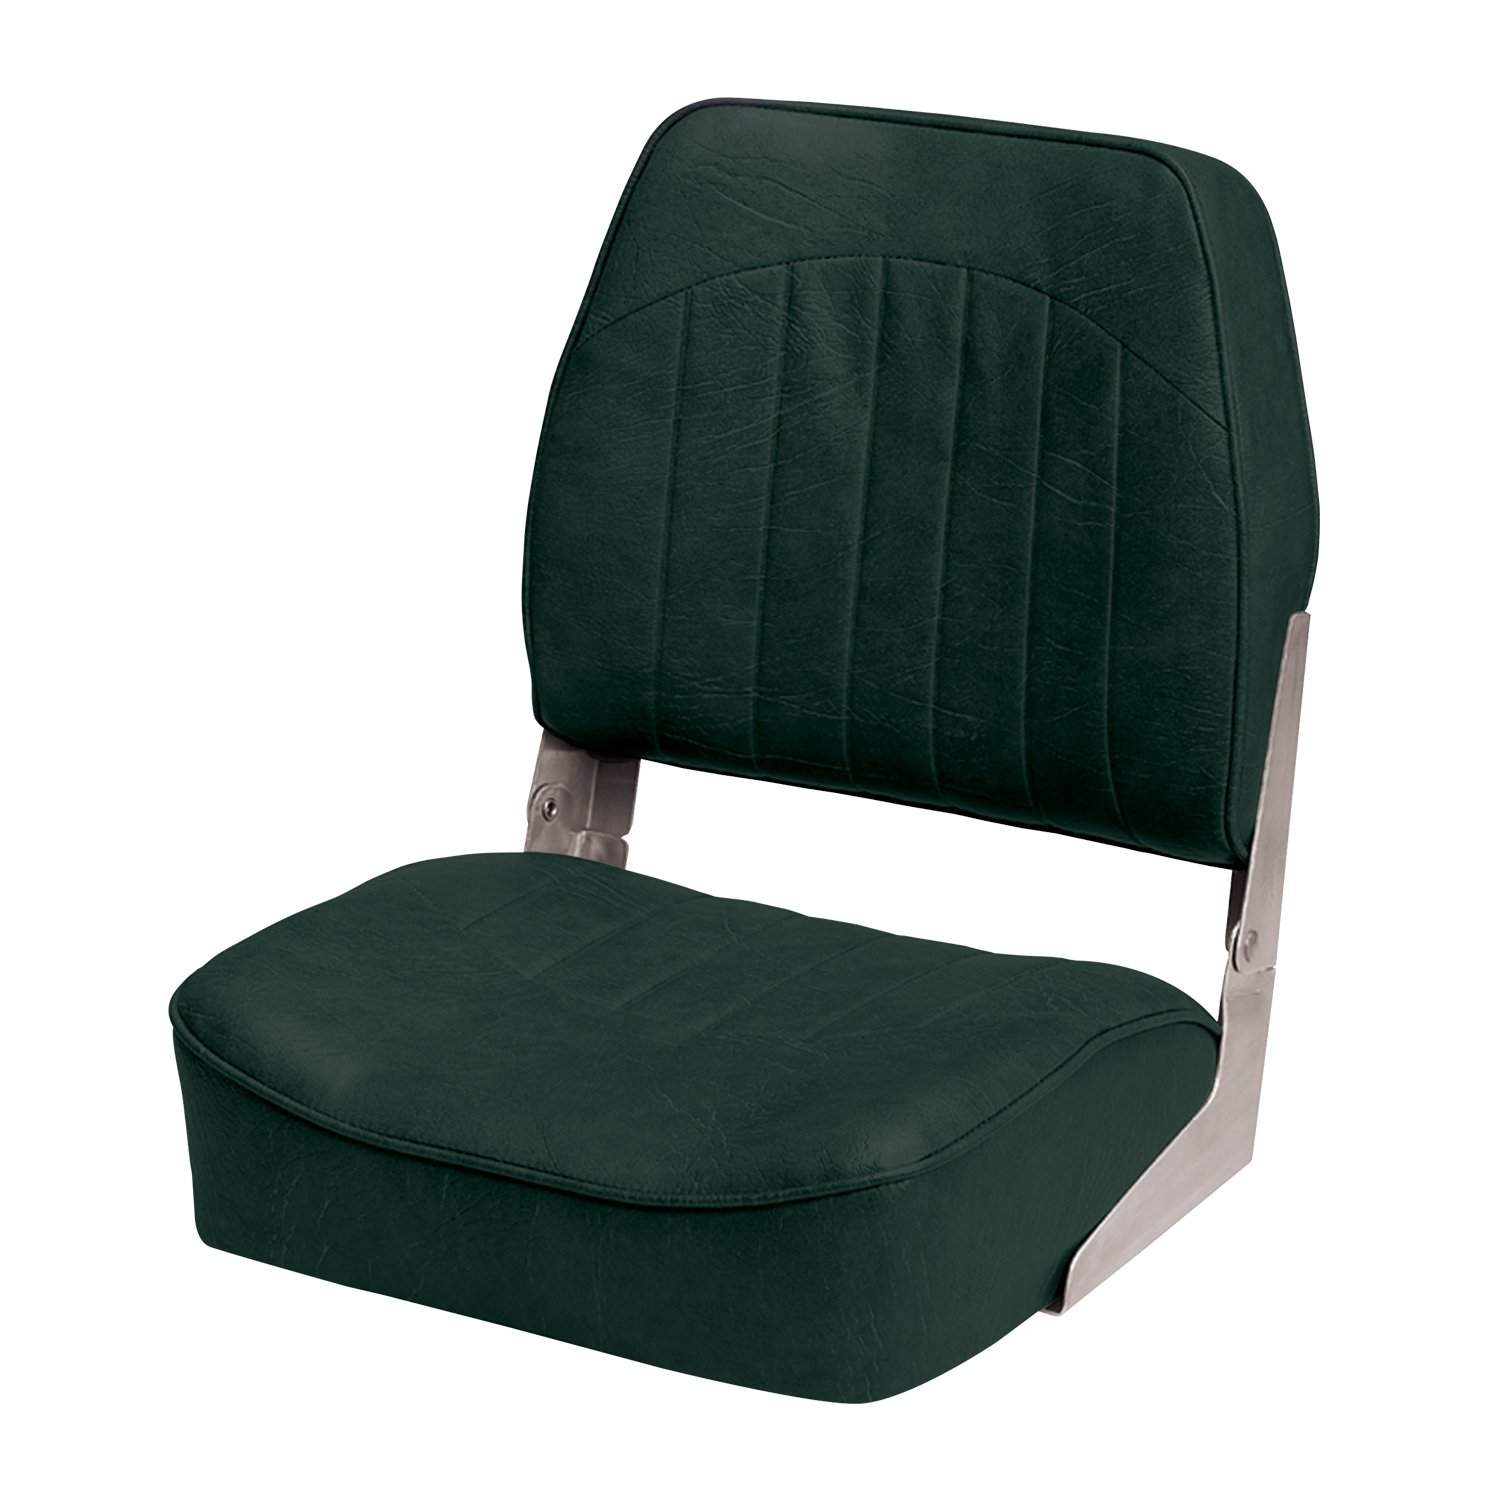 Wise 8WD734PLS-713 Low Back Boat Seat, Green by Wise